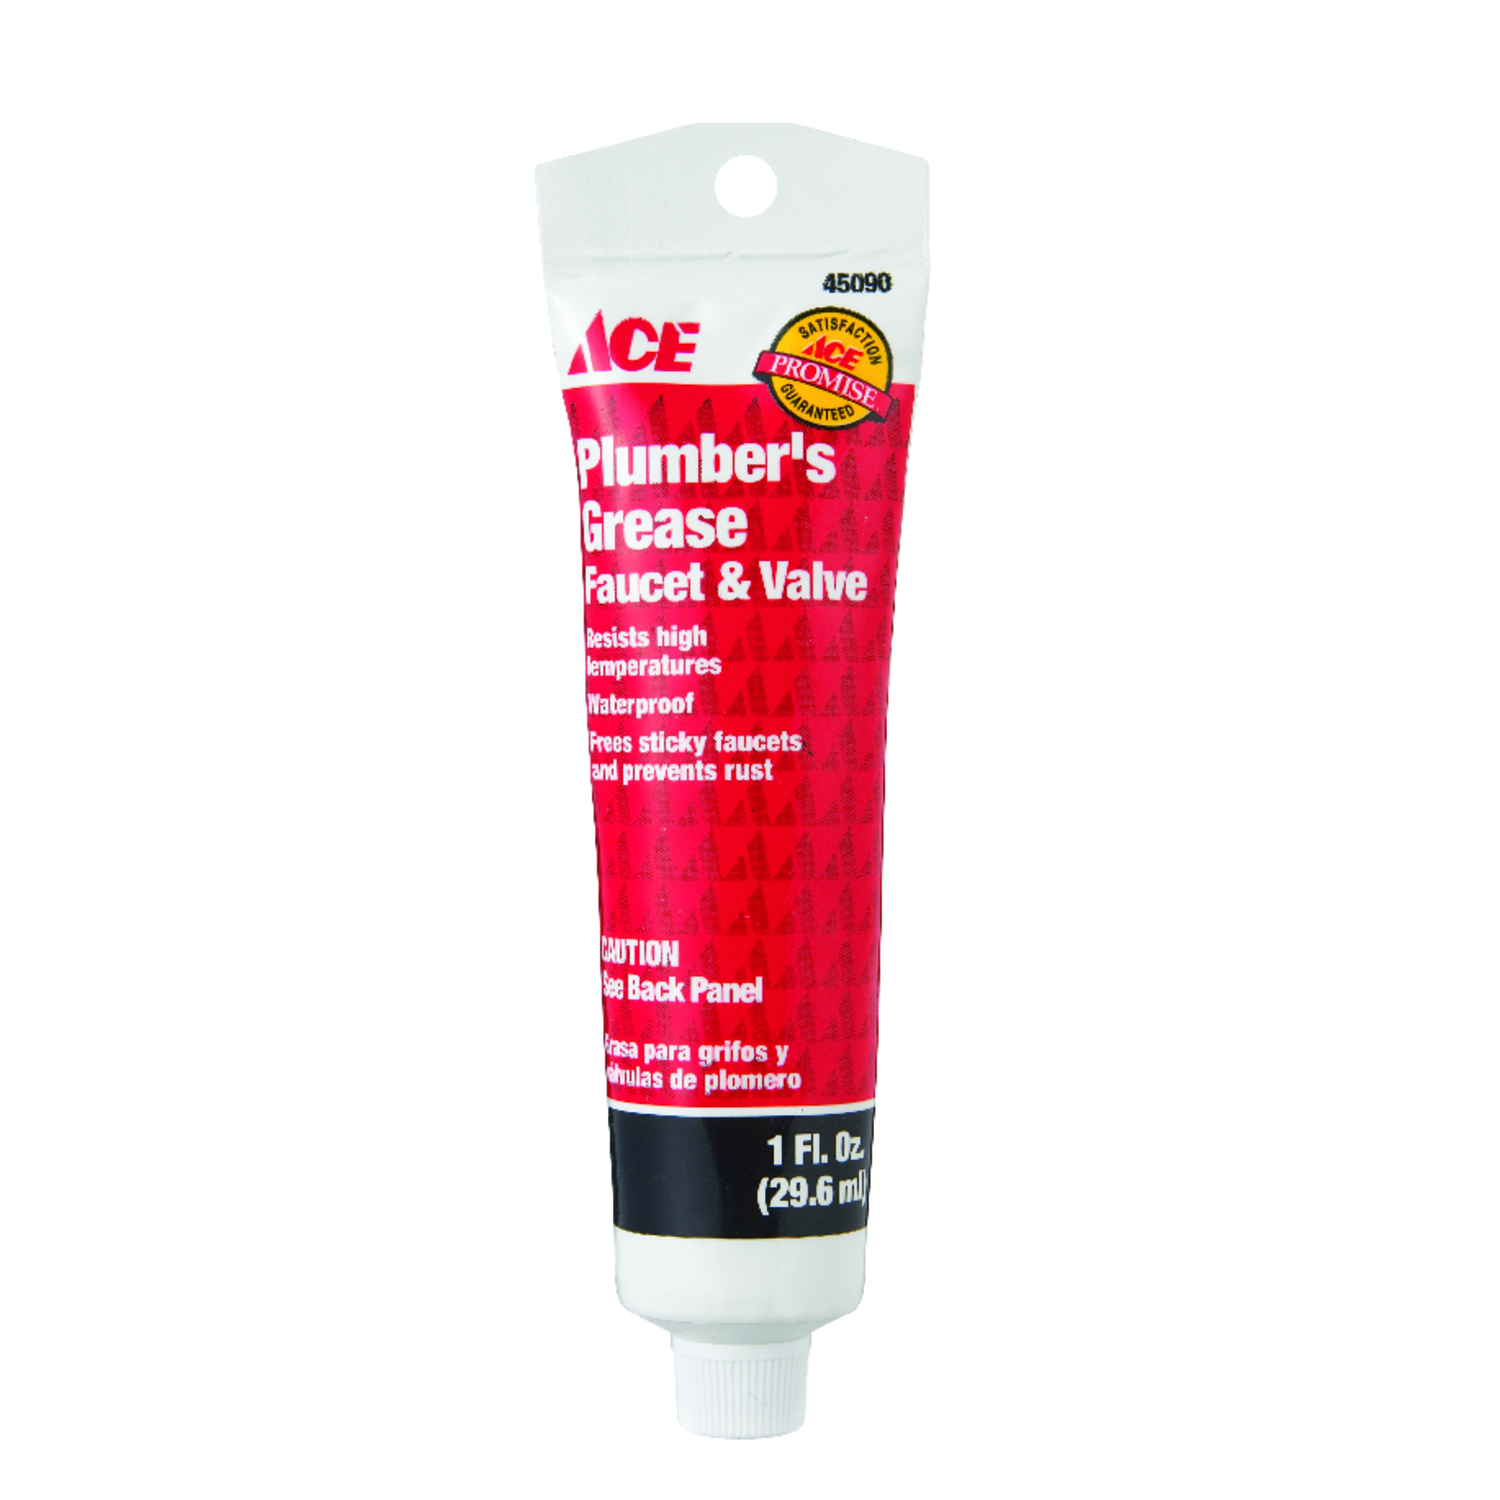 Ace Faucet and Valve Plumber's Grease 1 fl. oz.